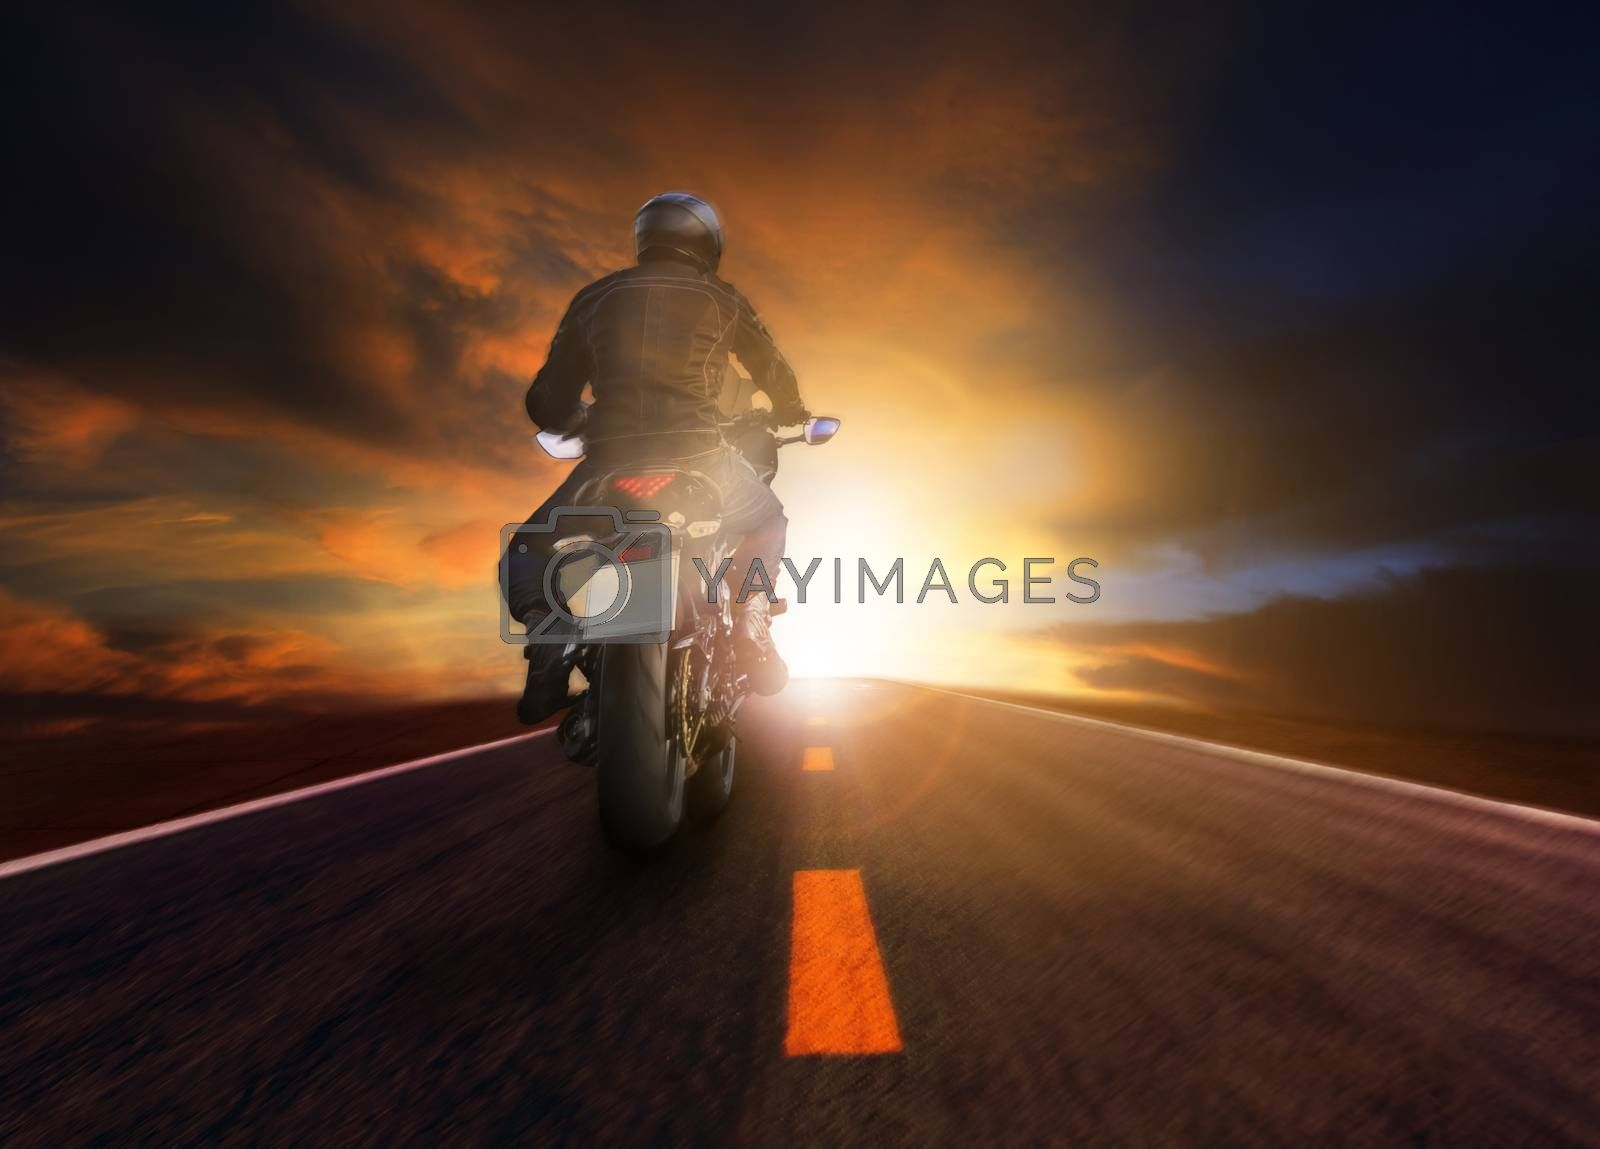 man riding motorcycle on road for traeling lifestyle